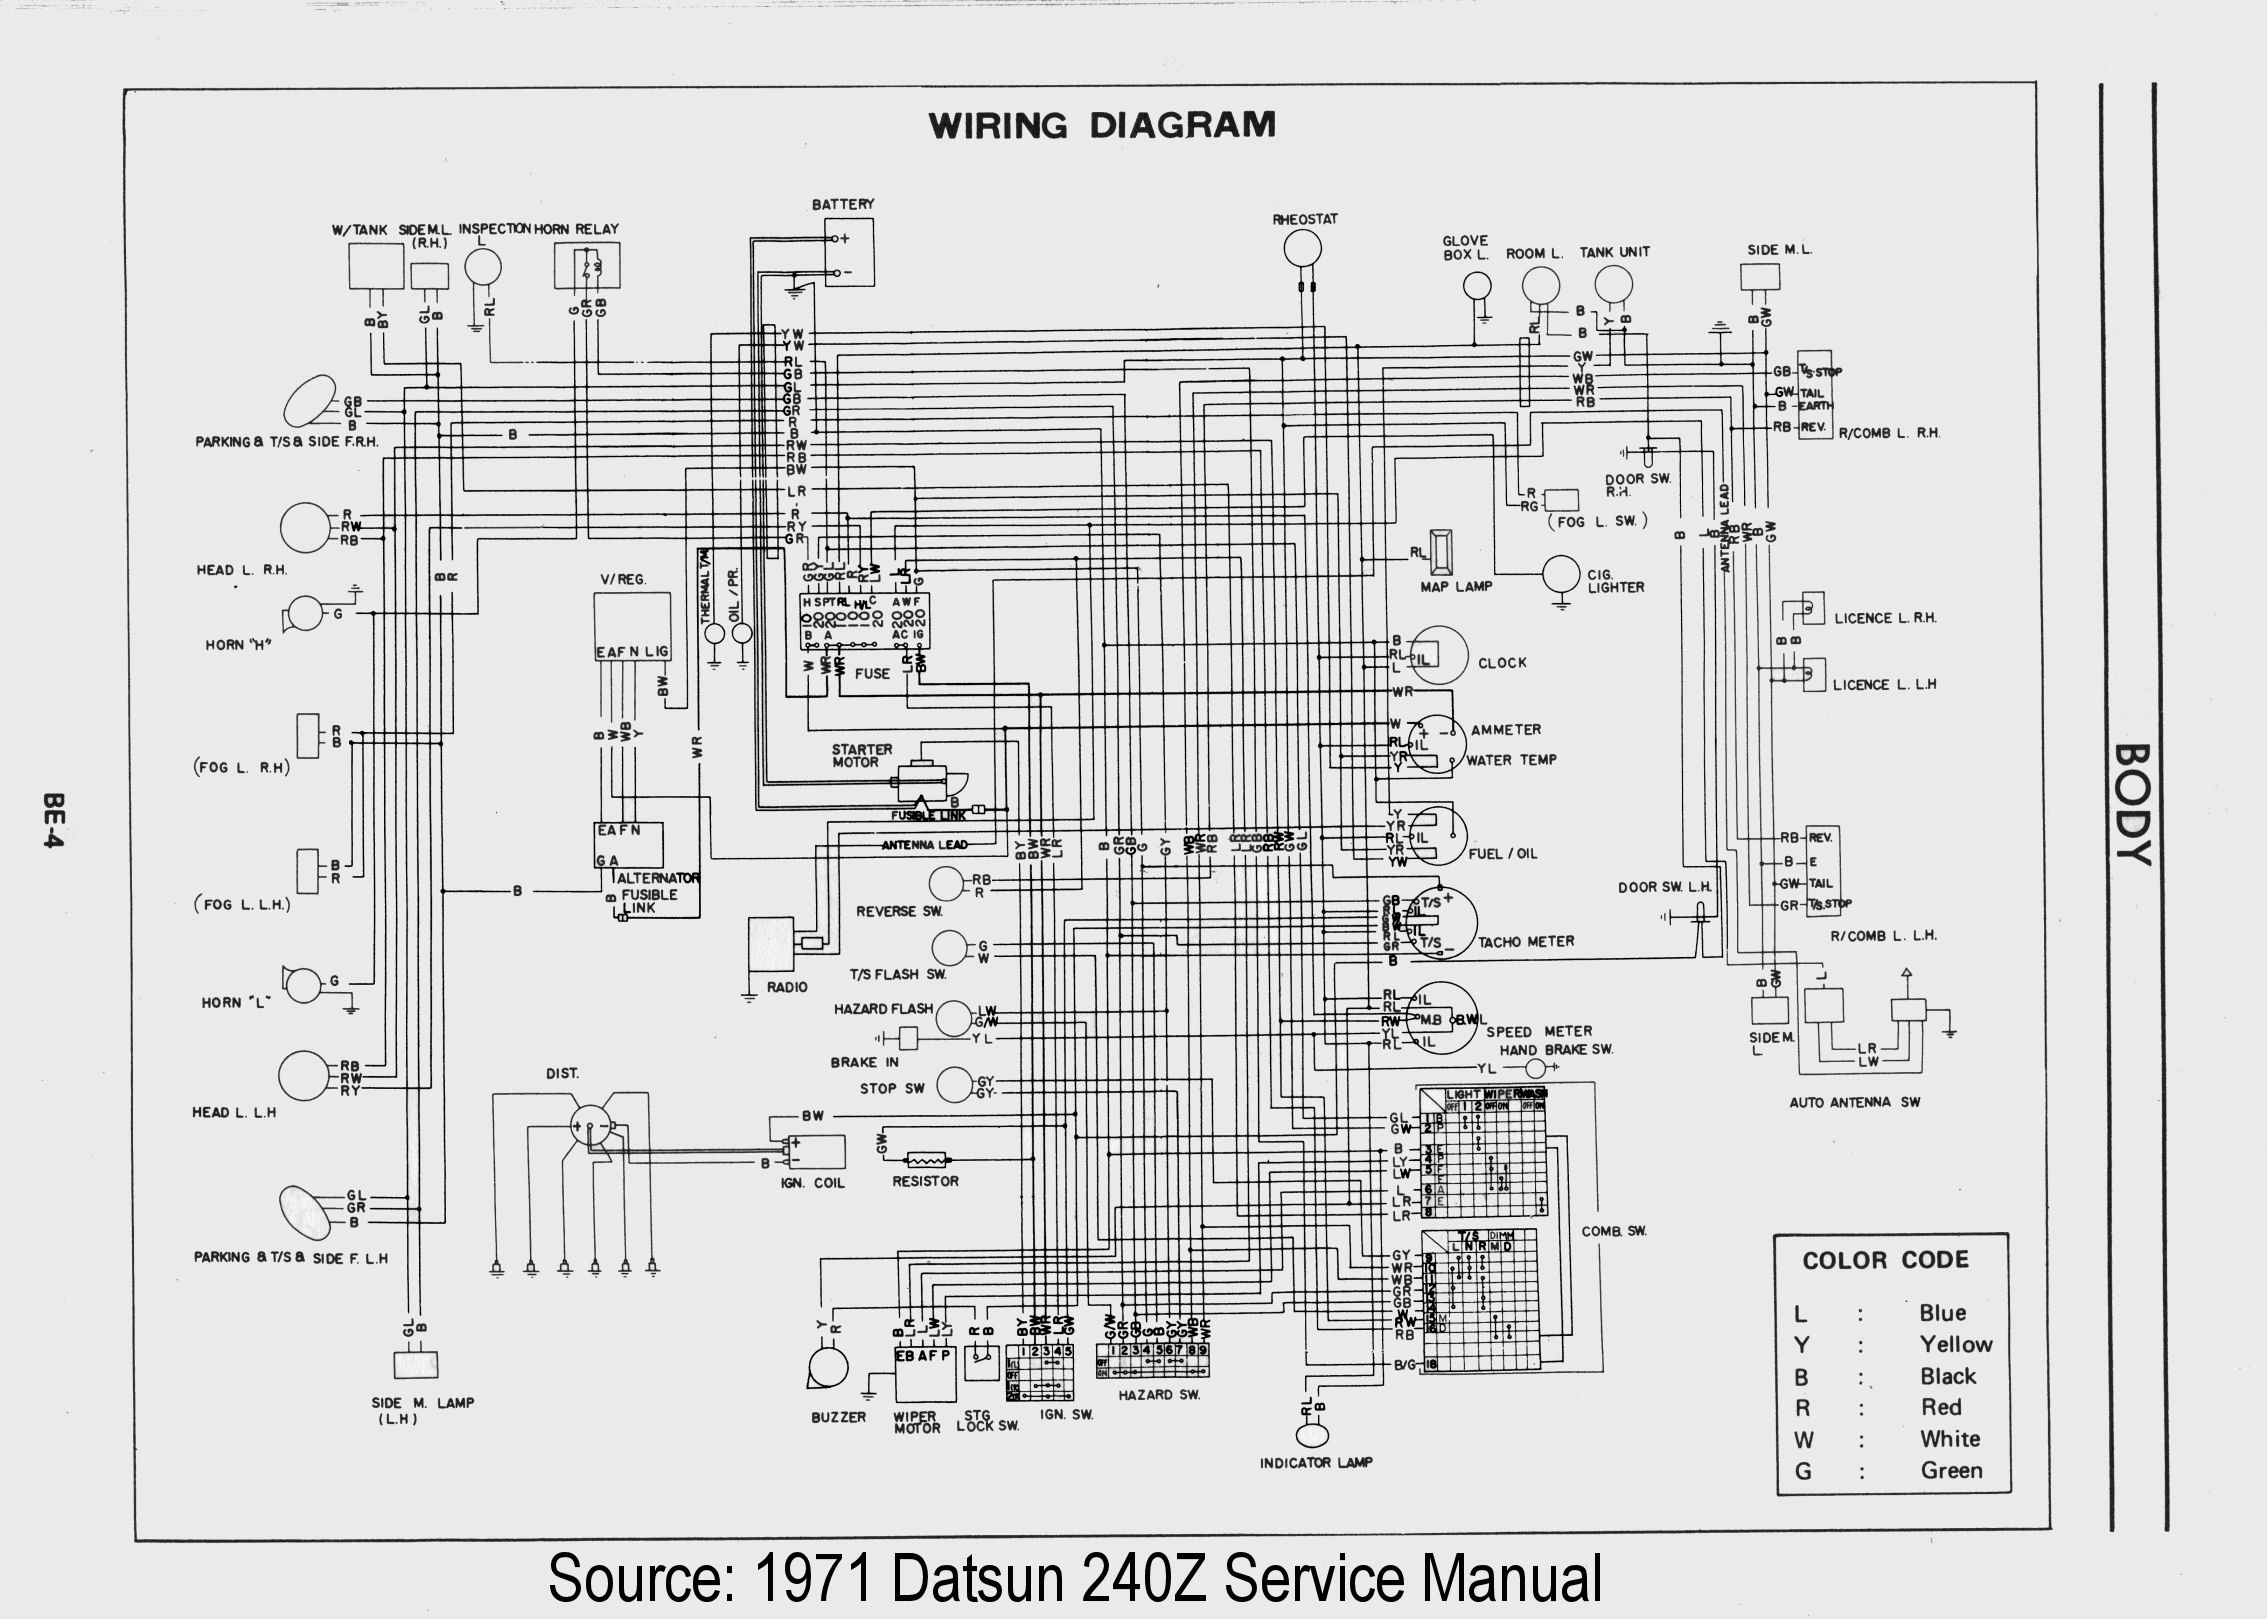 Generic Wiring Troubleshooting Checklist Woodworkerb Electrical Diagram 1971 Datsun 240z